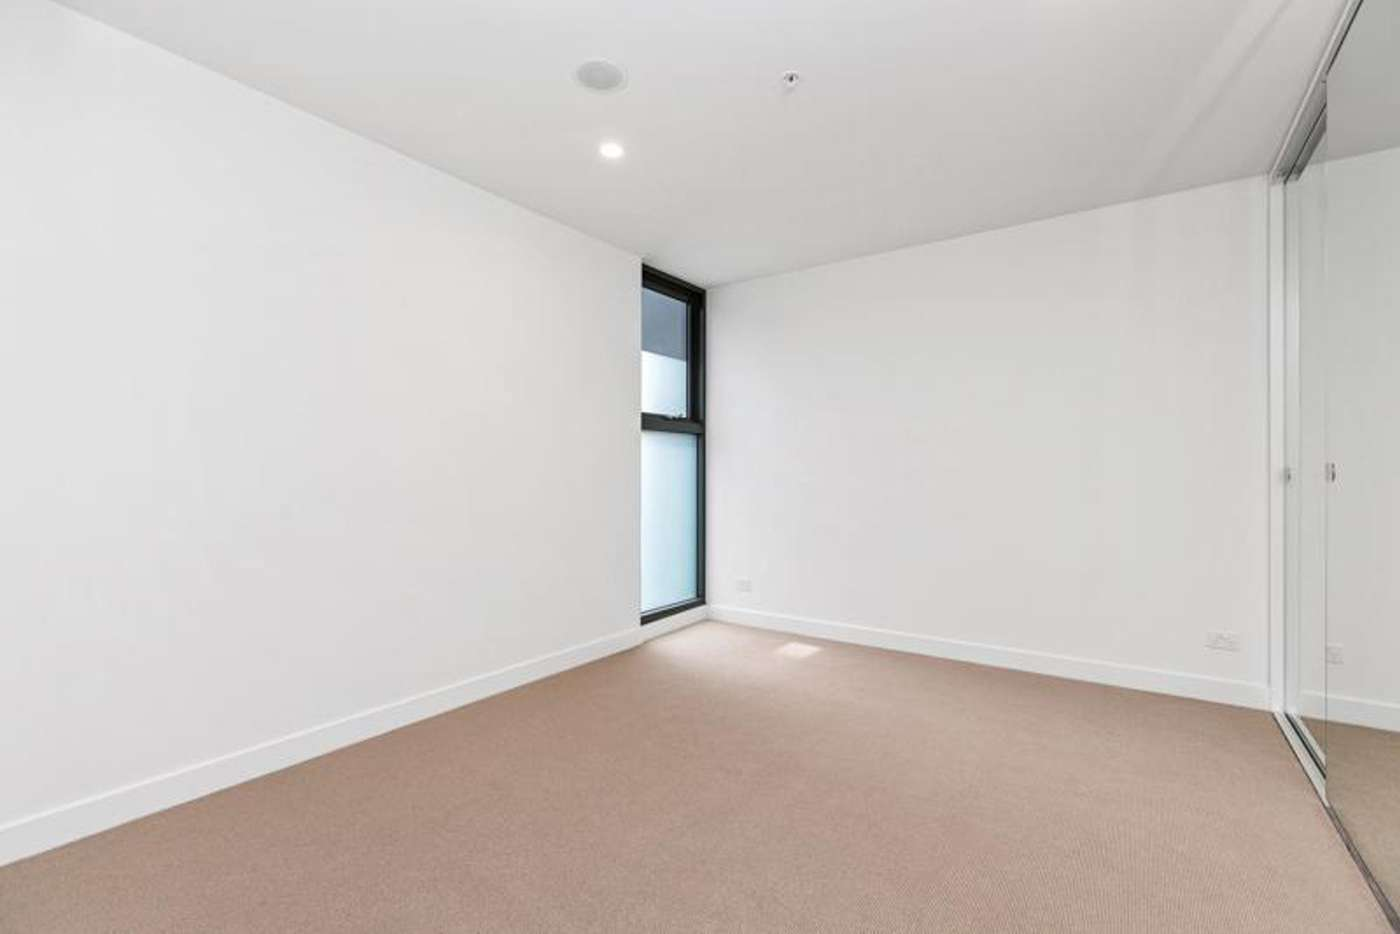 Sixth view of Homely apartment listing, 101/19-25 Nott Street, Port Melbourne VIC 3207